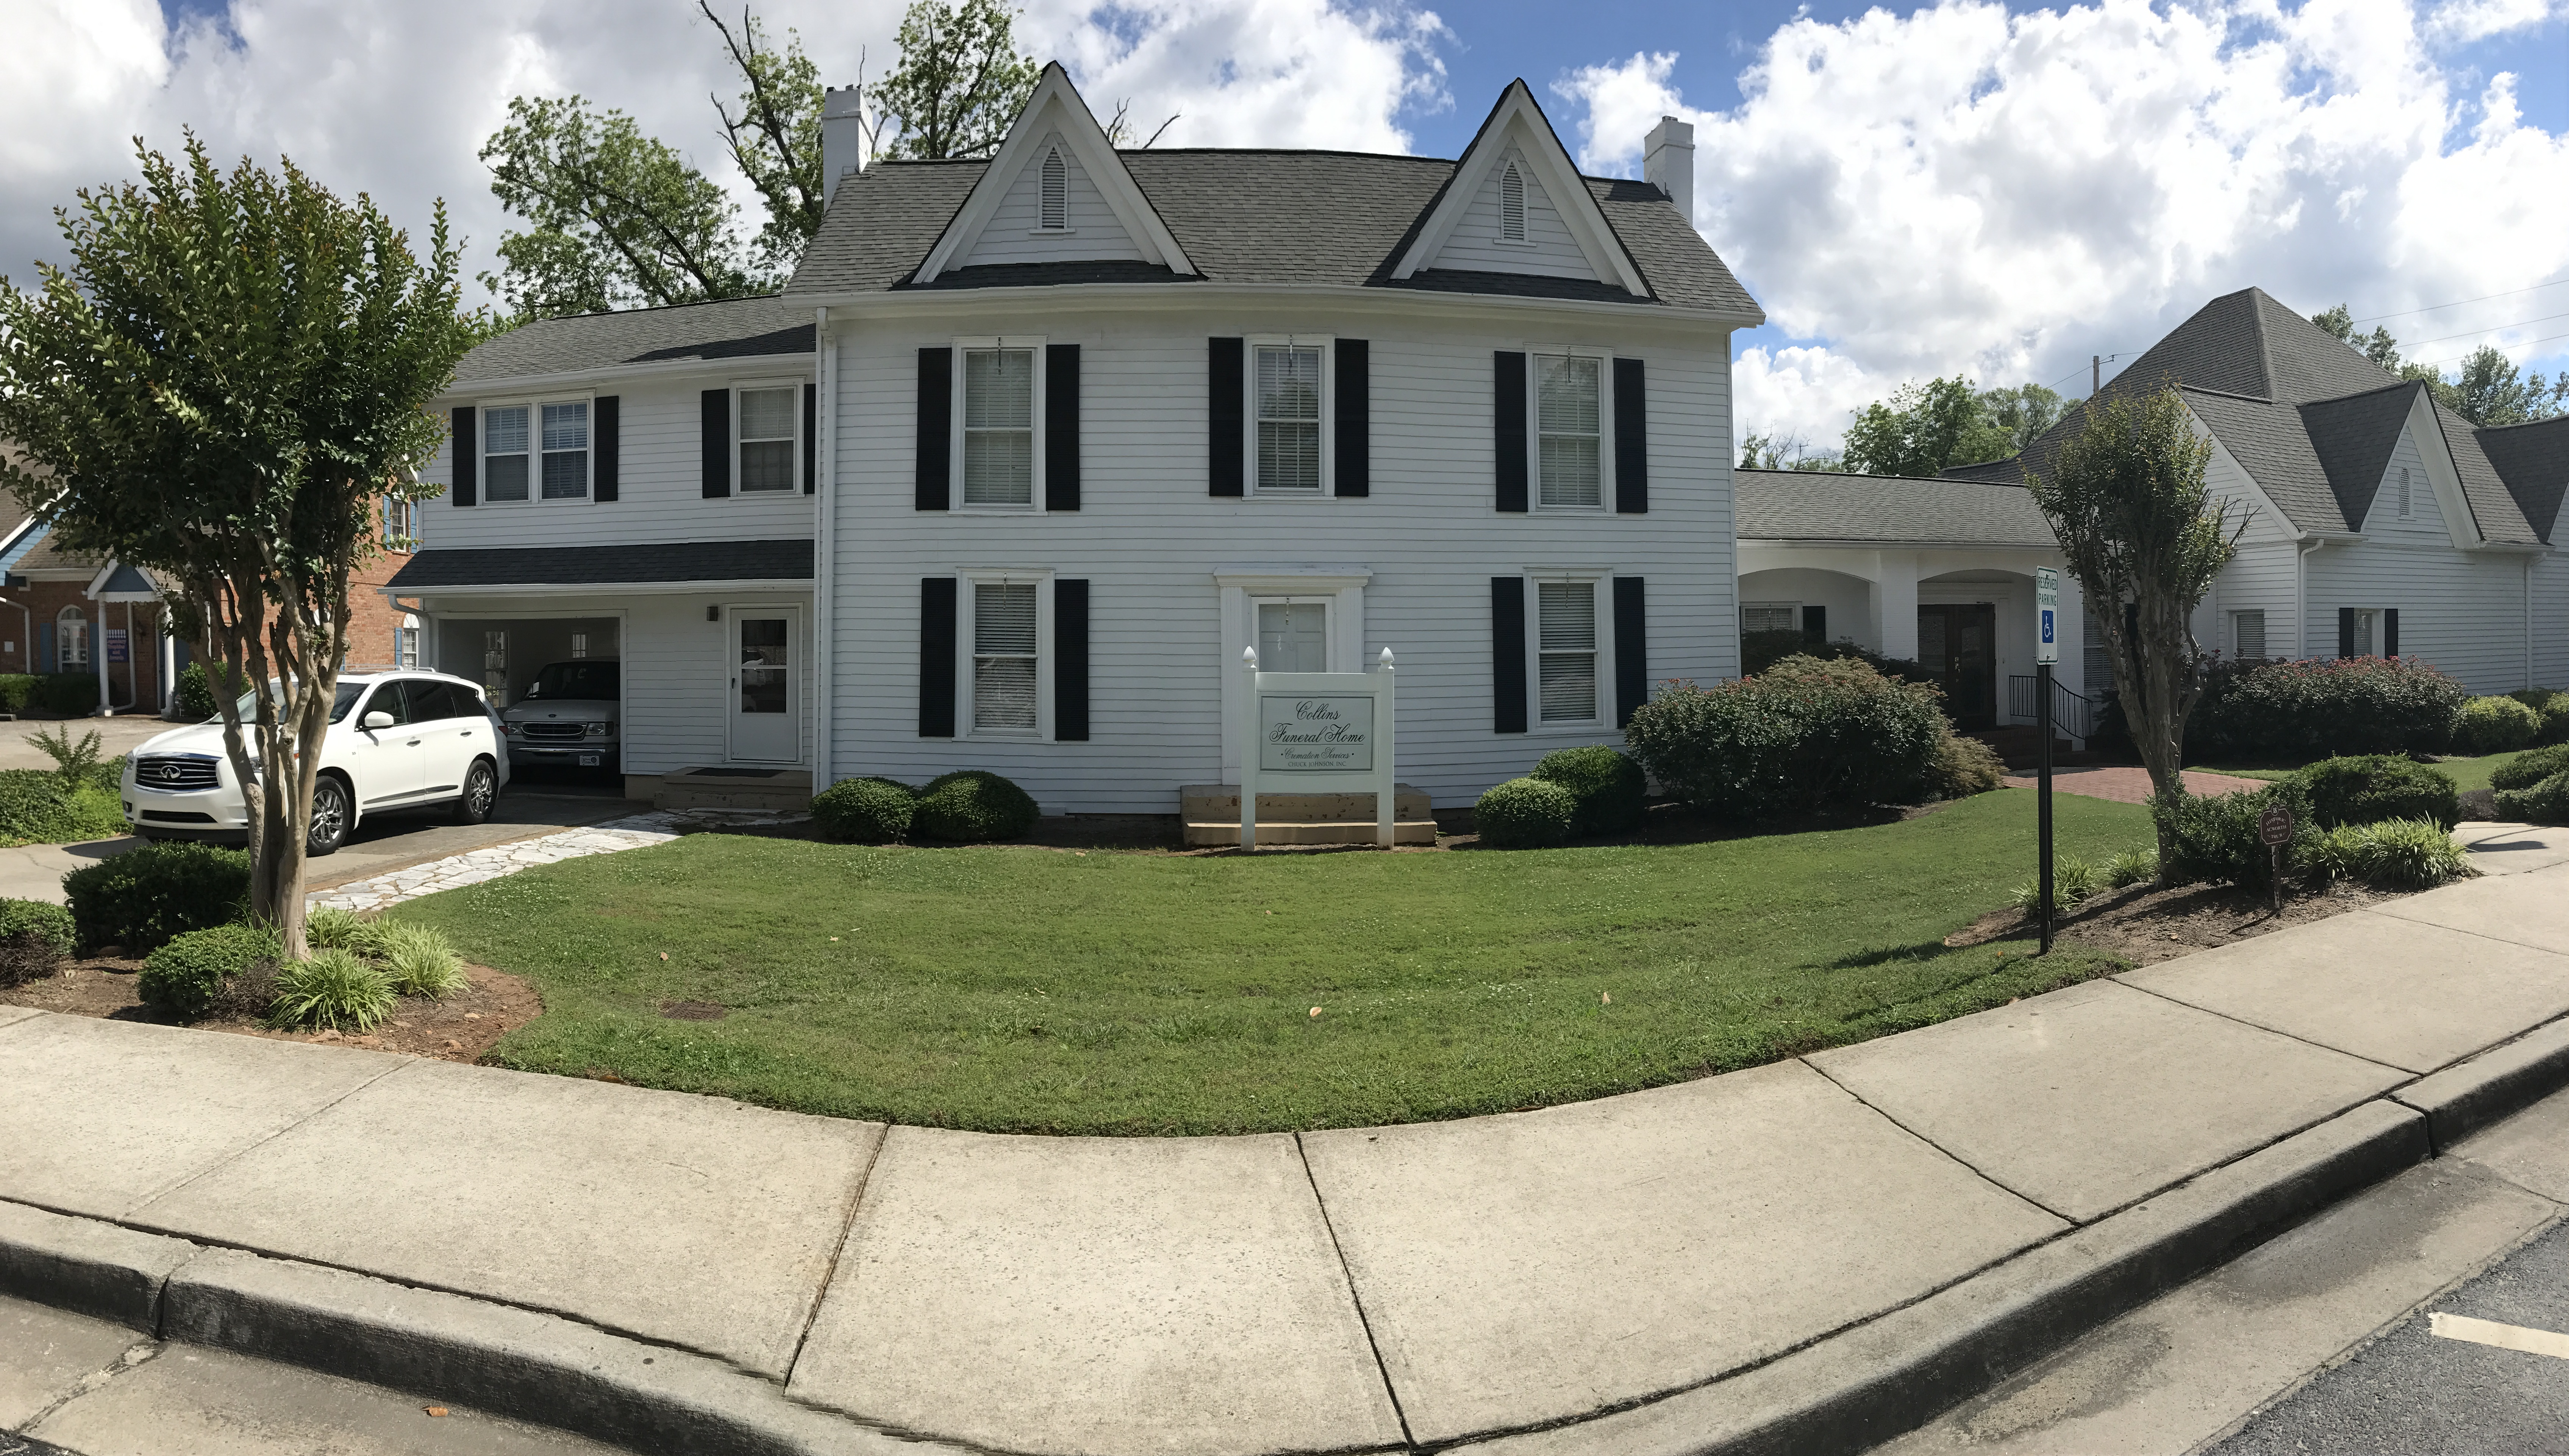 Pictured is Collins Funeral Home, the longest continuing building in Acworth.